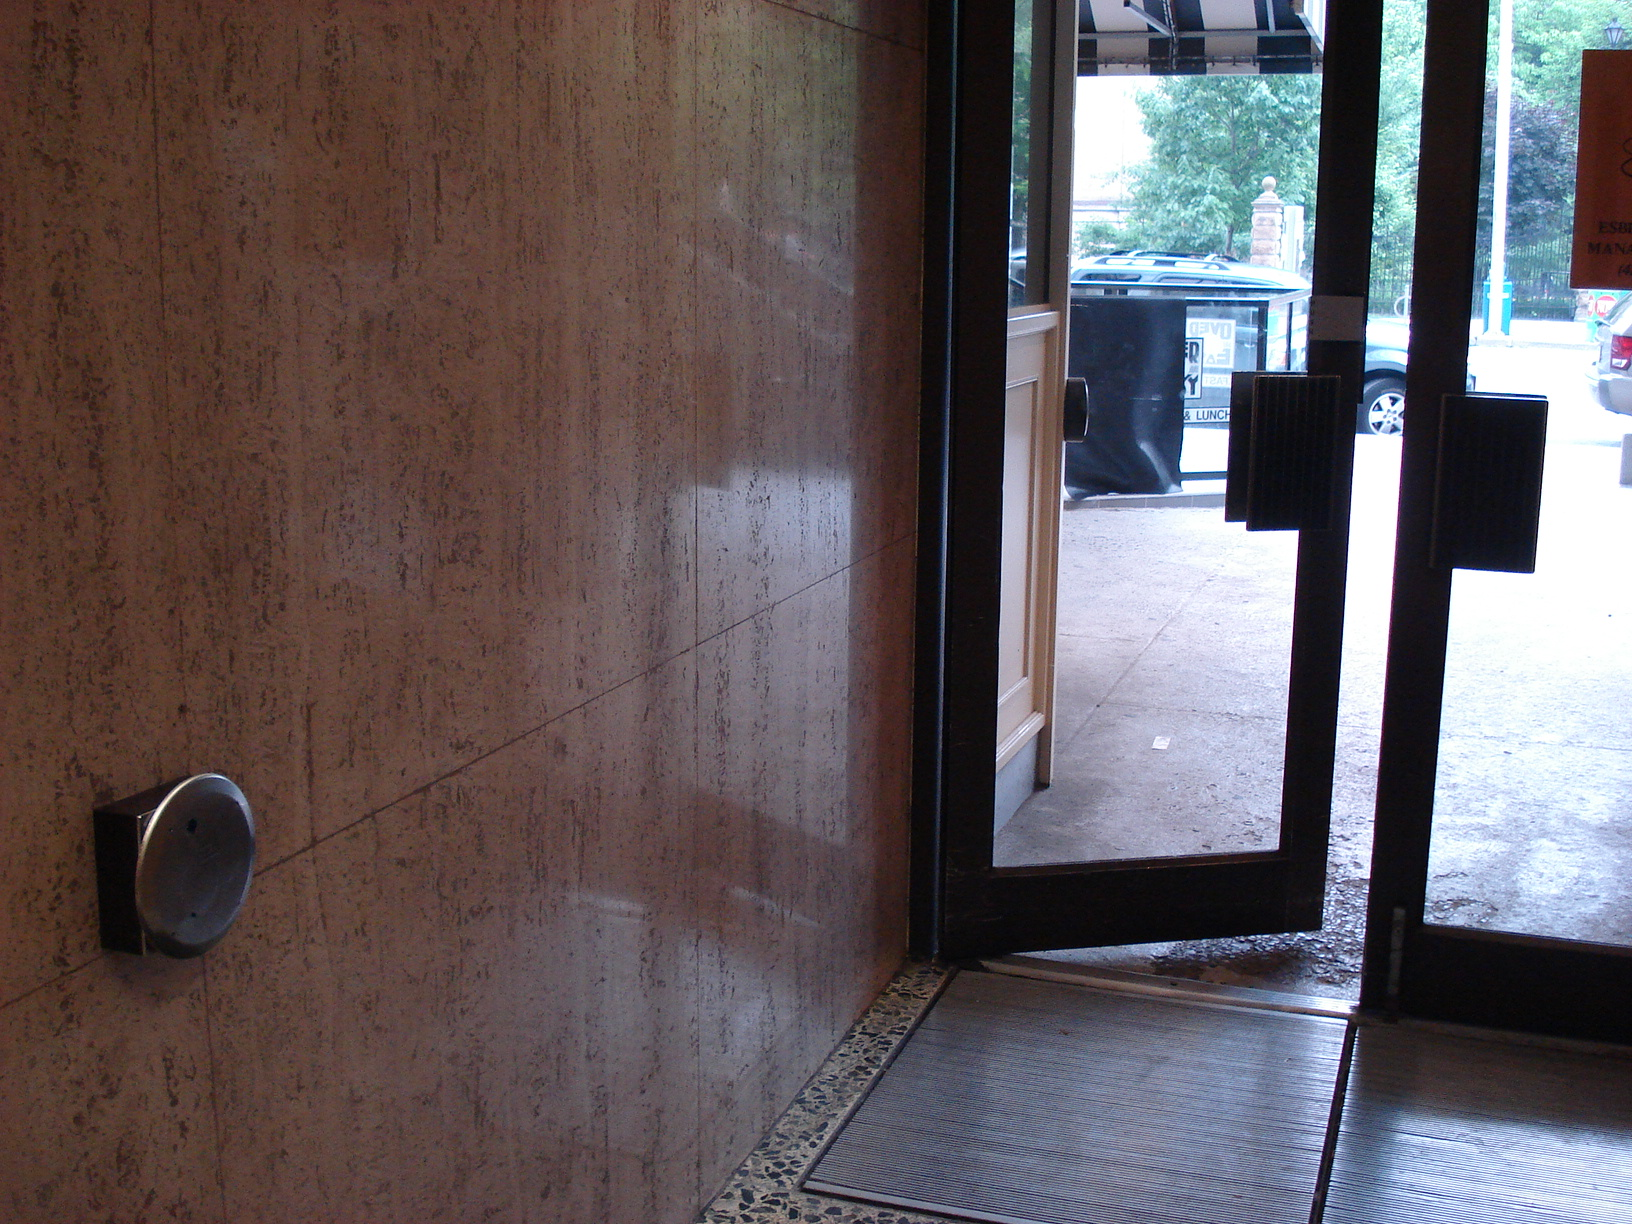 Picture of accessible entrance. Automatic door opener.